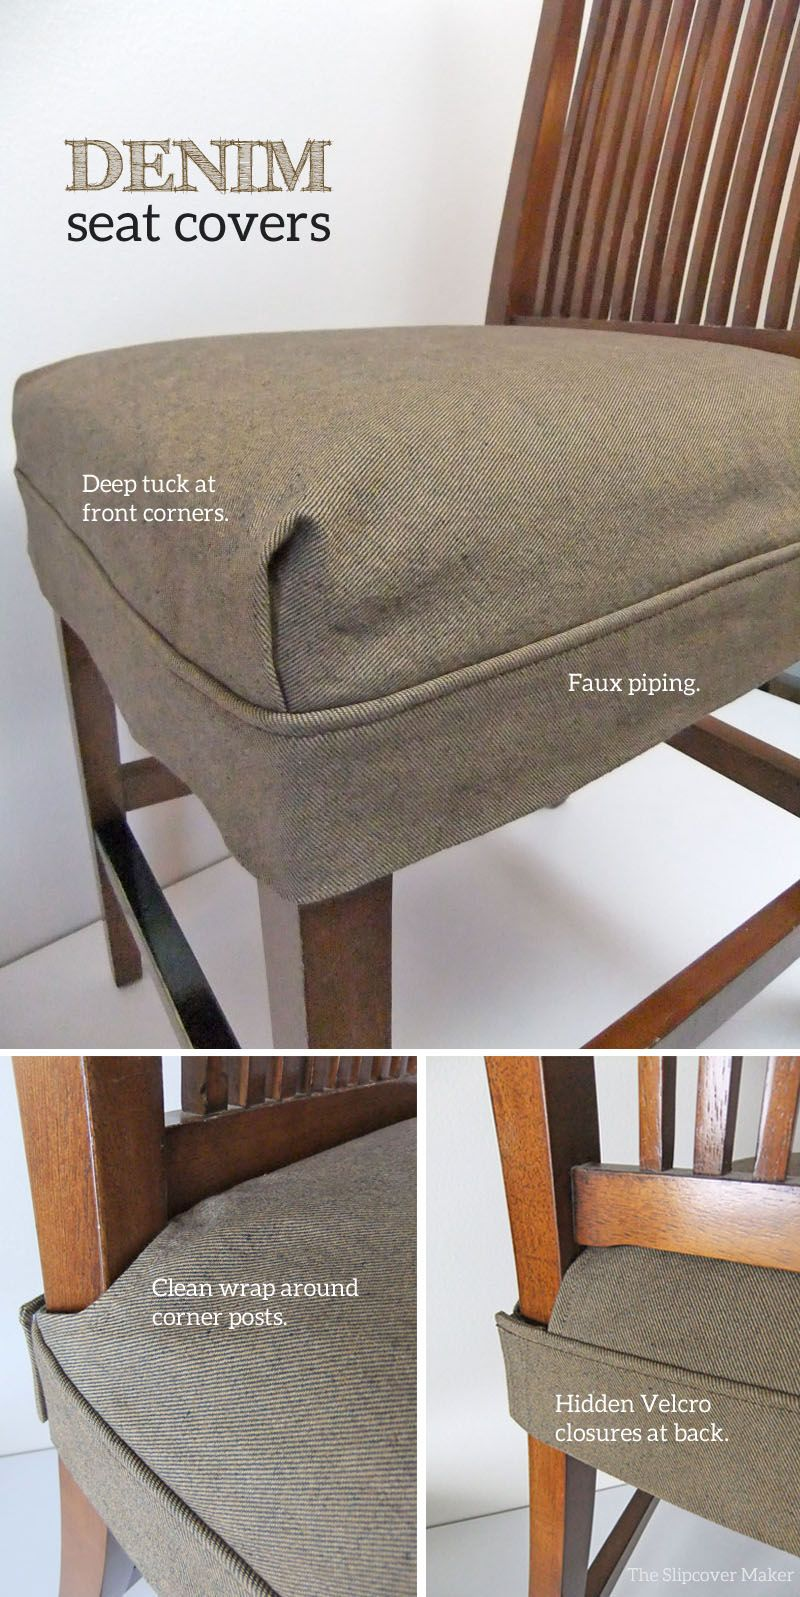 Washable Seat Covers For Dining Room Chairs Are A Smart Choice When Upholstery Becomes Stained And Worn Out Or Splits Ls Like Pam S Leather